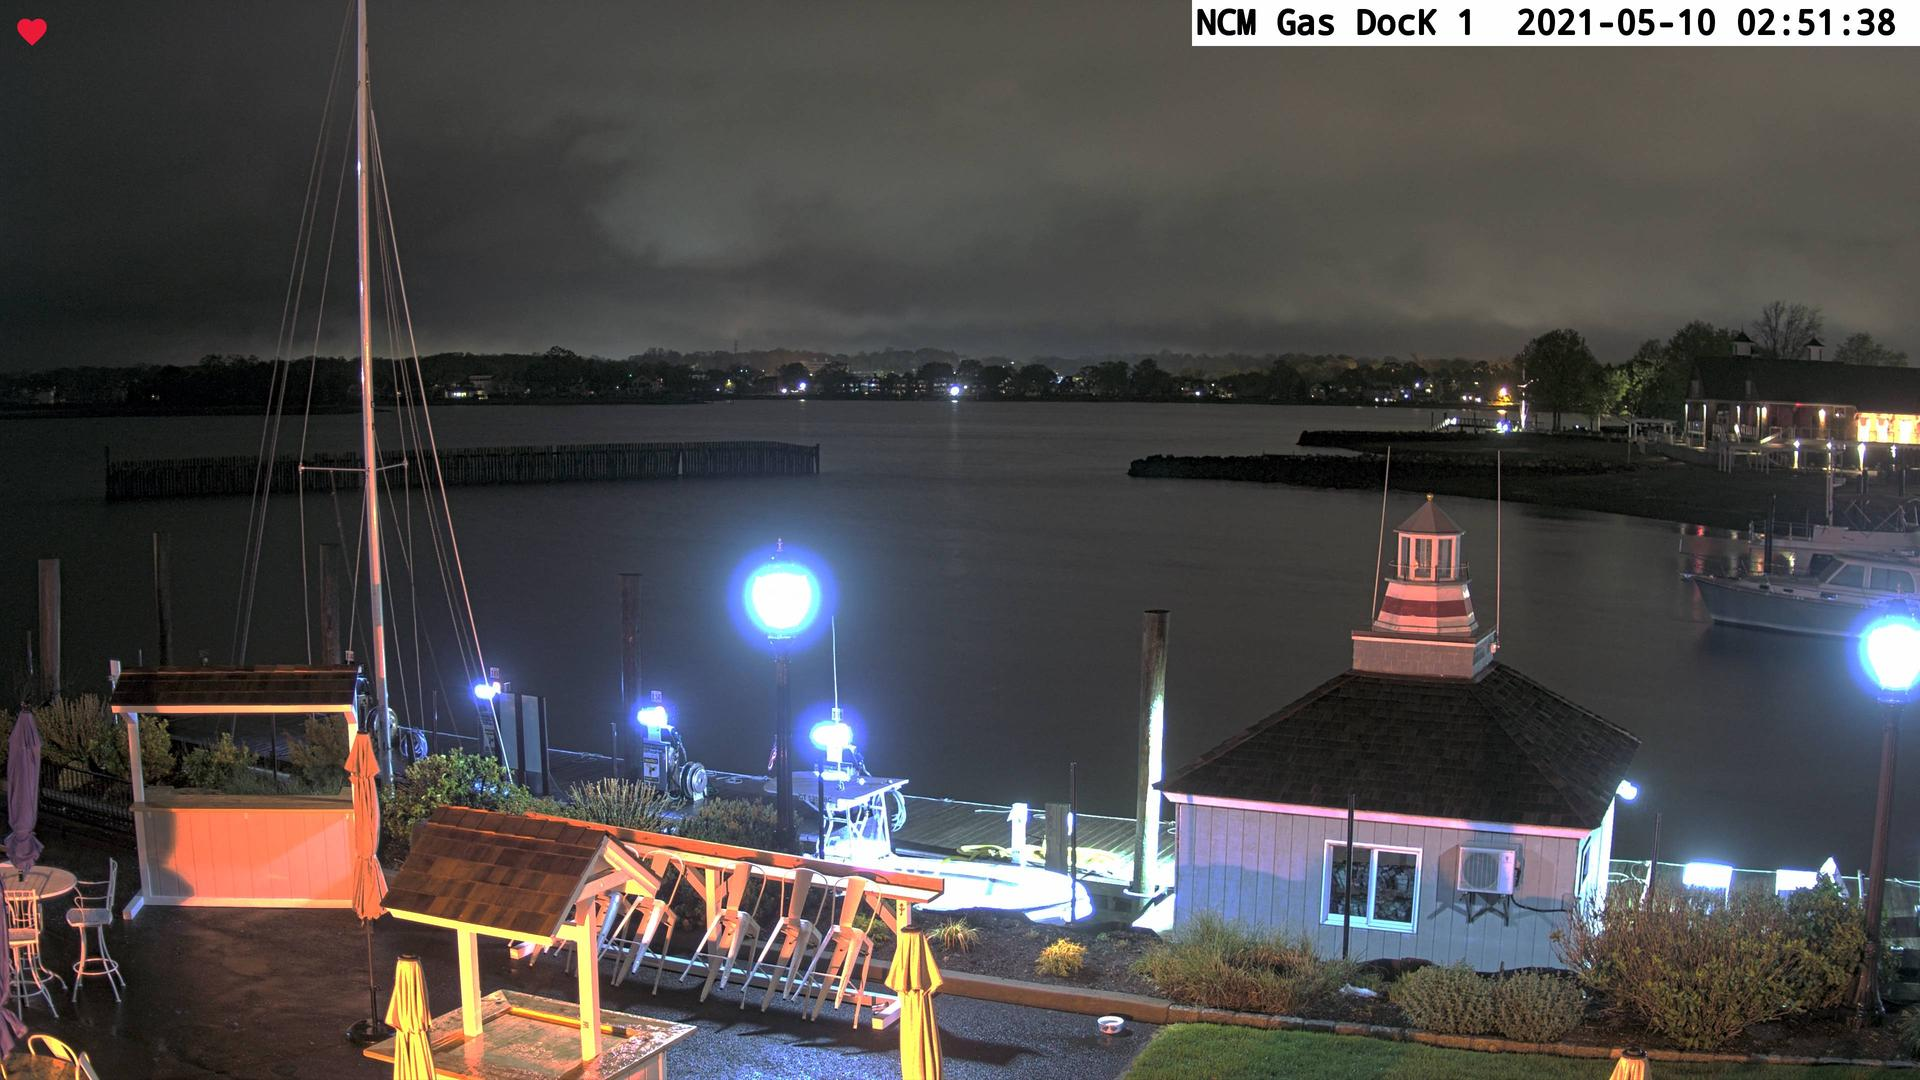 Webcam Norwalk Cove Marina › South-West: United States